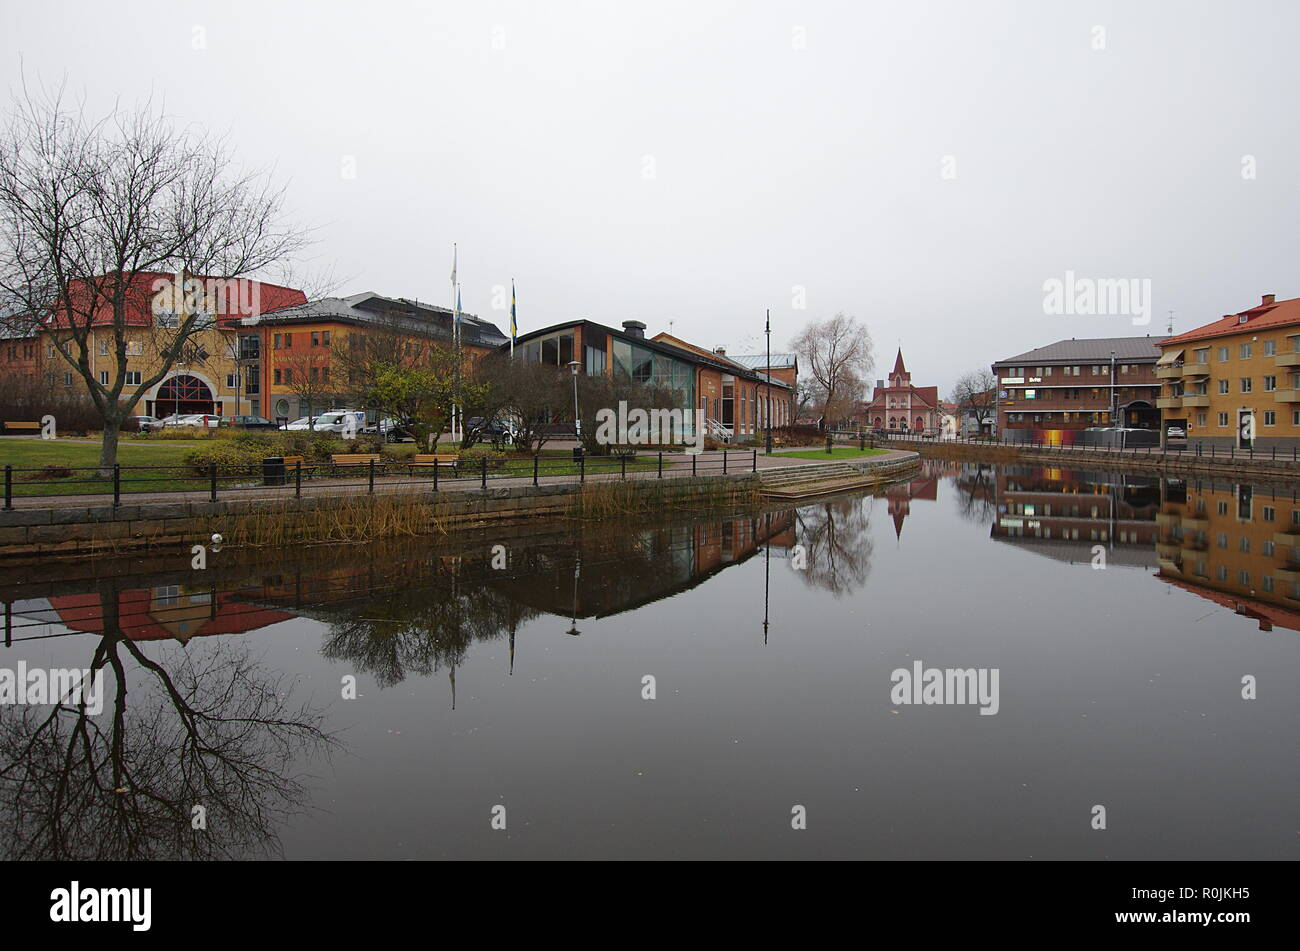 The city of Falun in Dalarna,Sweden on a gray and cold autumn day. 05.11.2018 - Stock Image